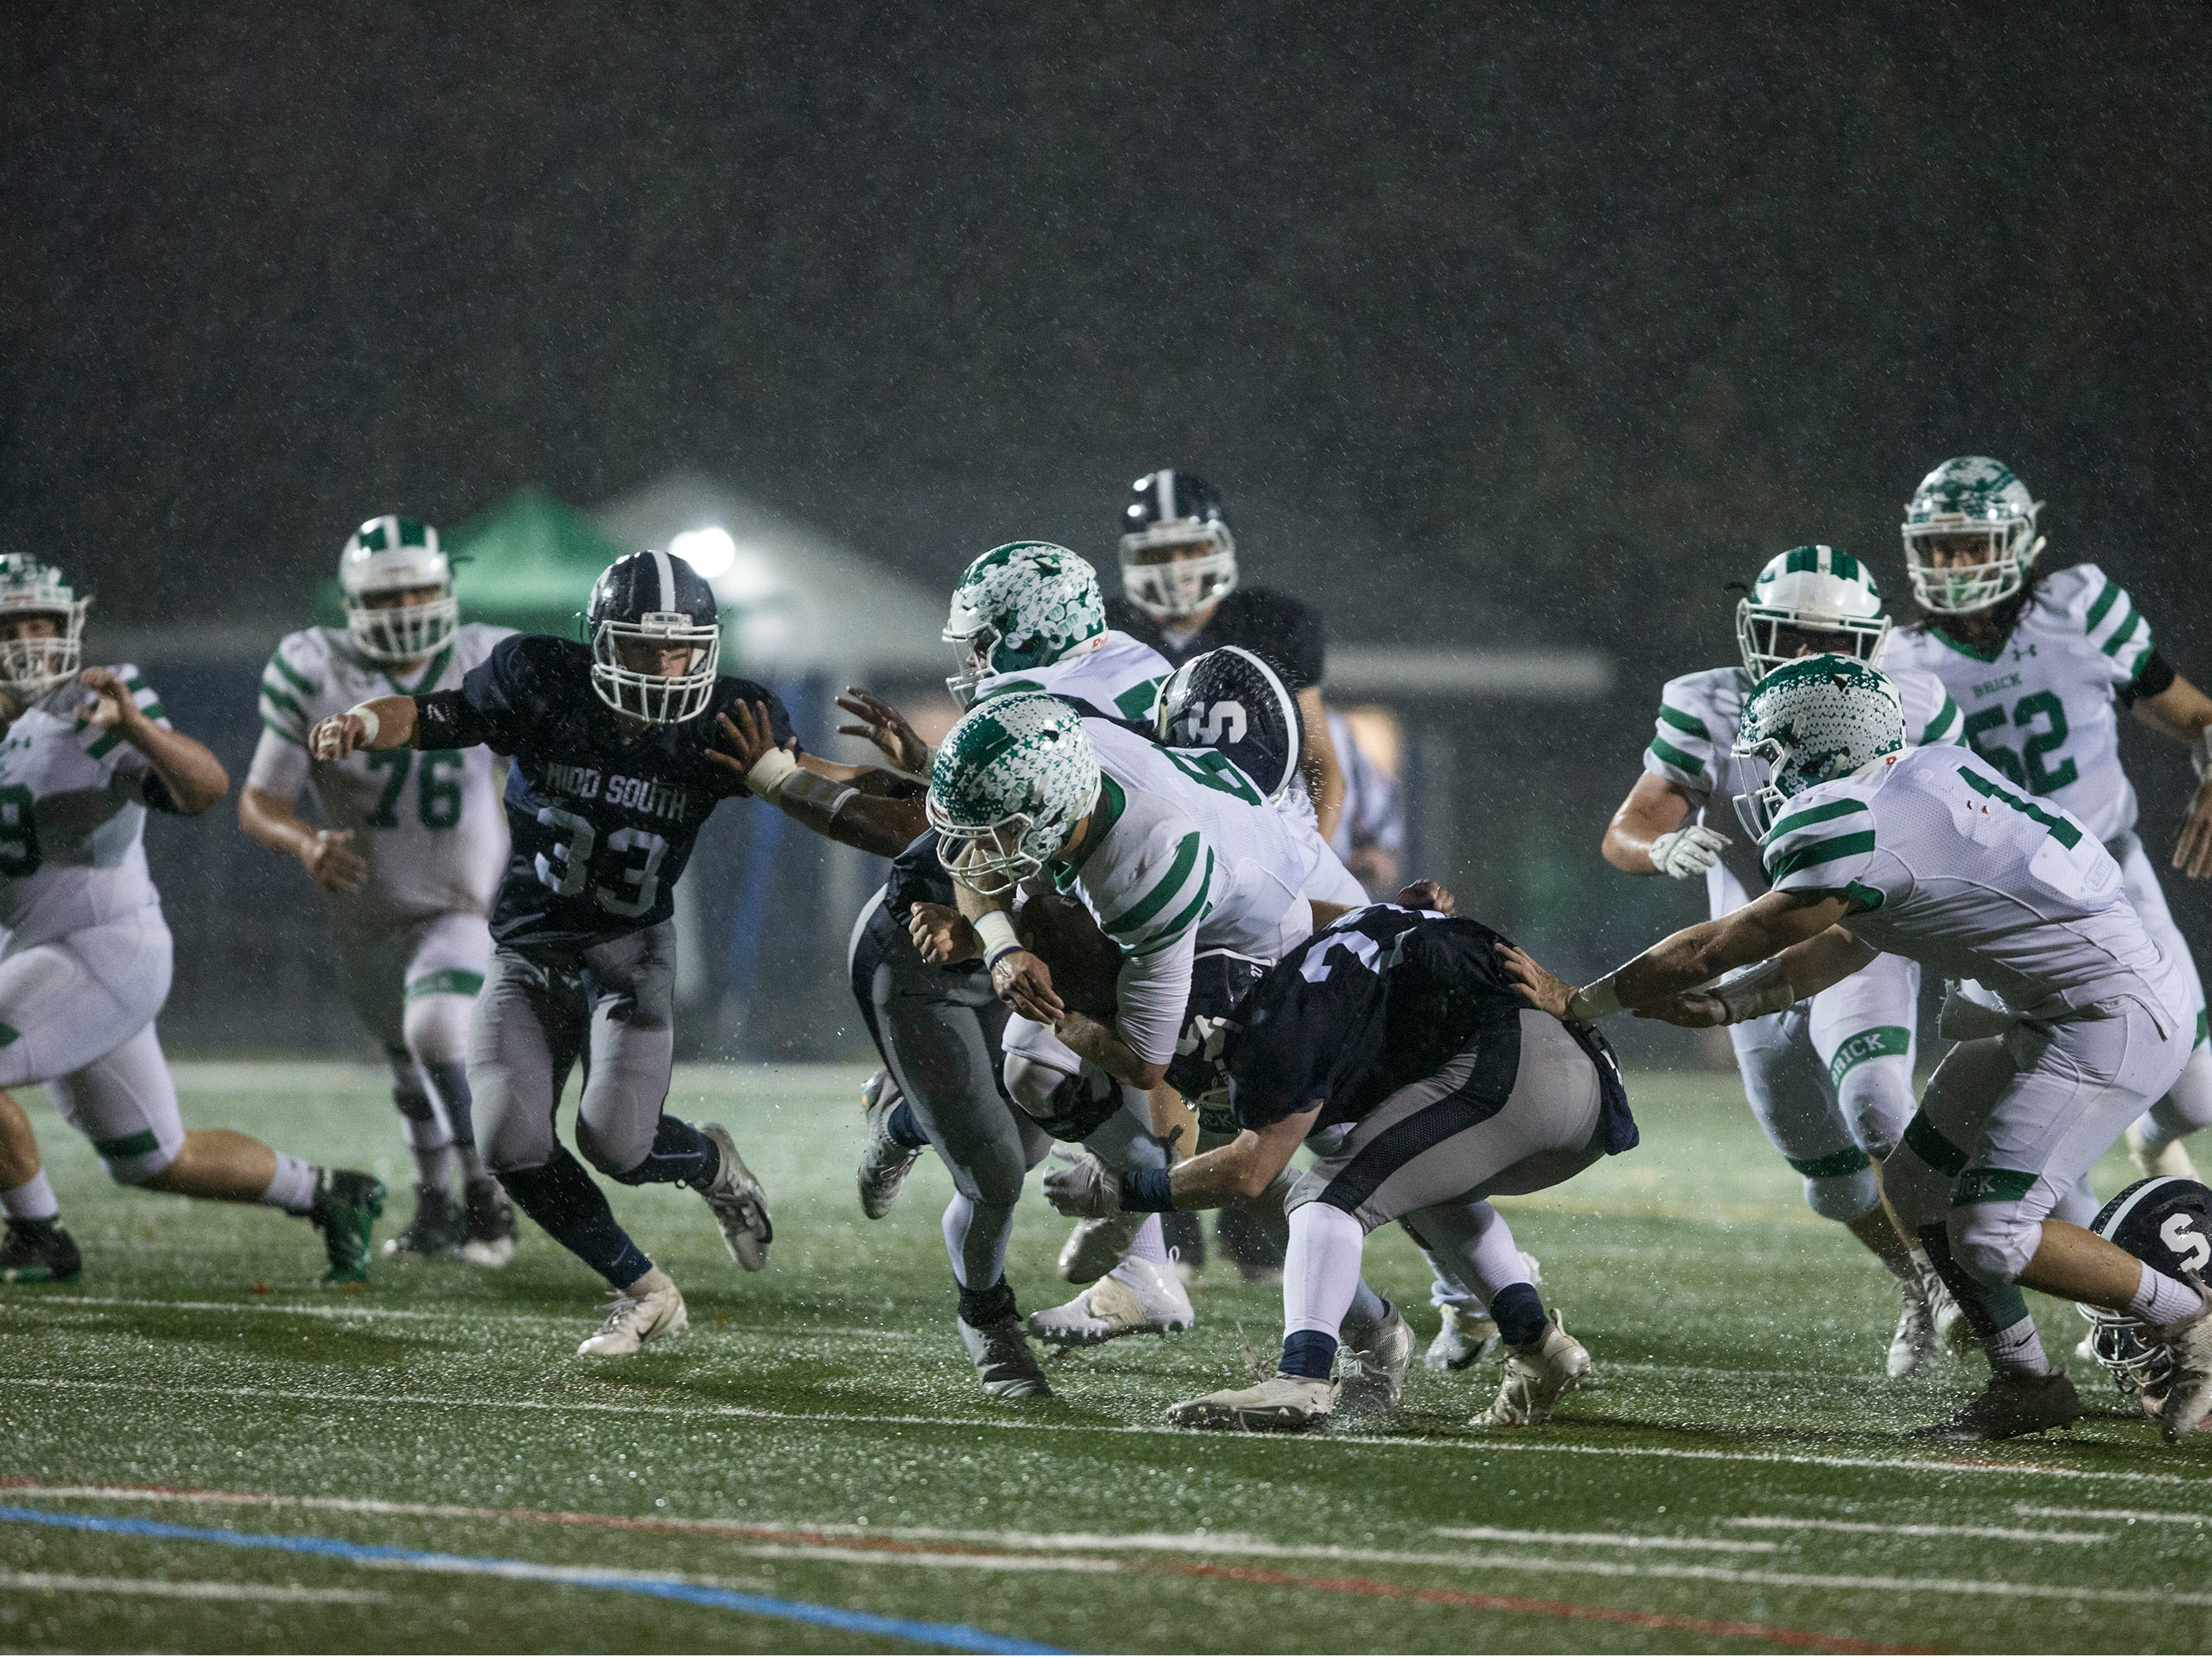 NJ football playoffs: Top moments from across New Jersey in the second round